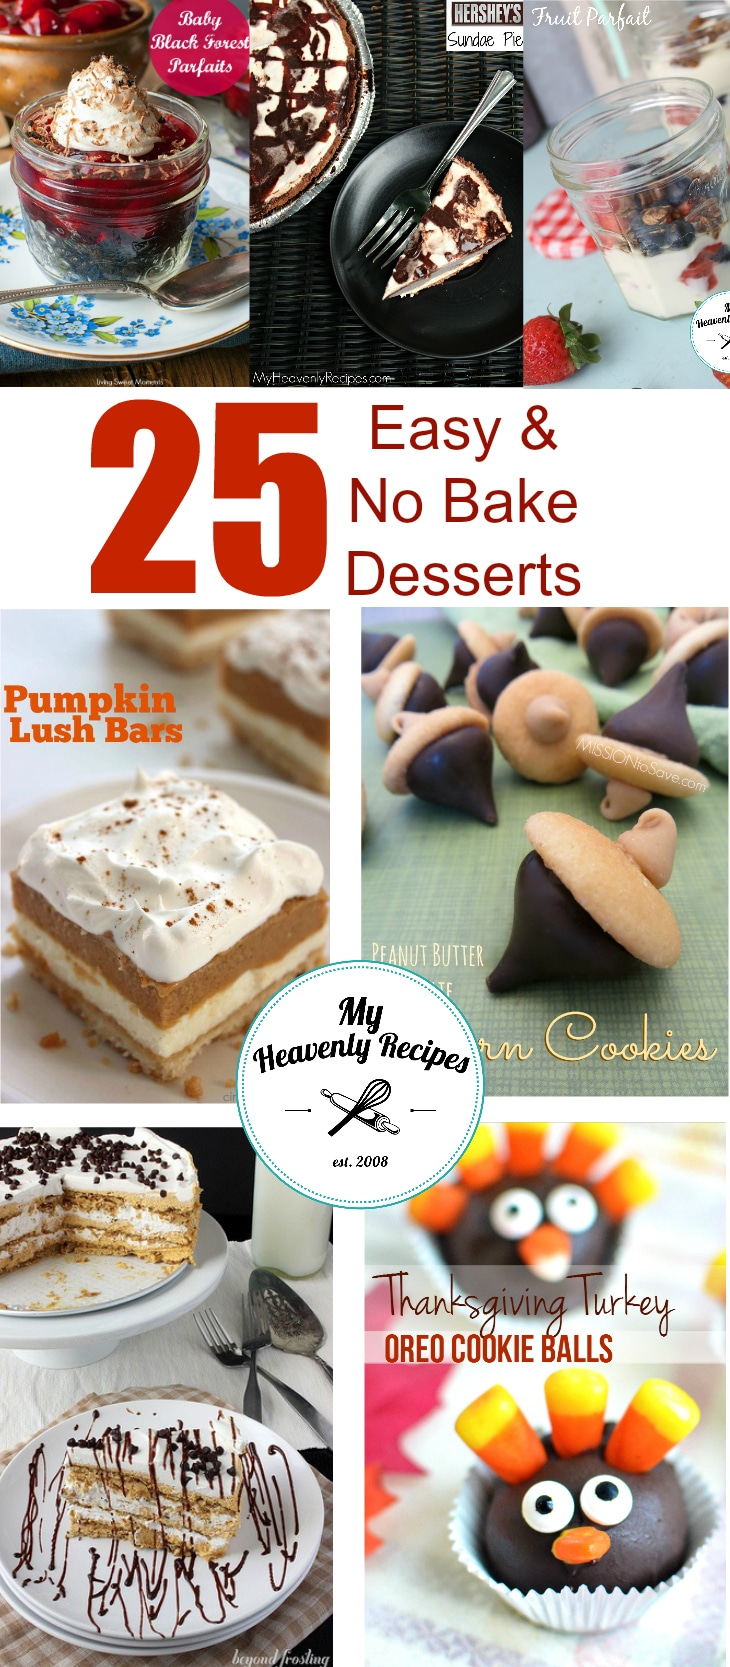 25 Easy & No Bake Desserts